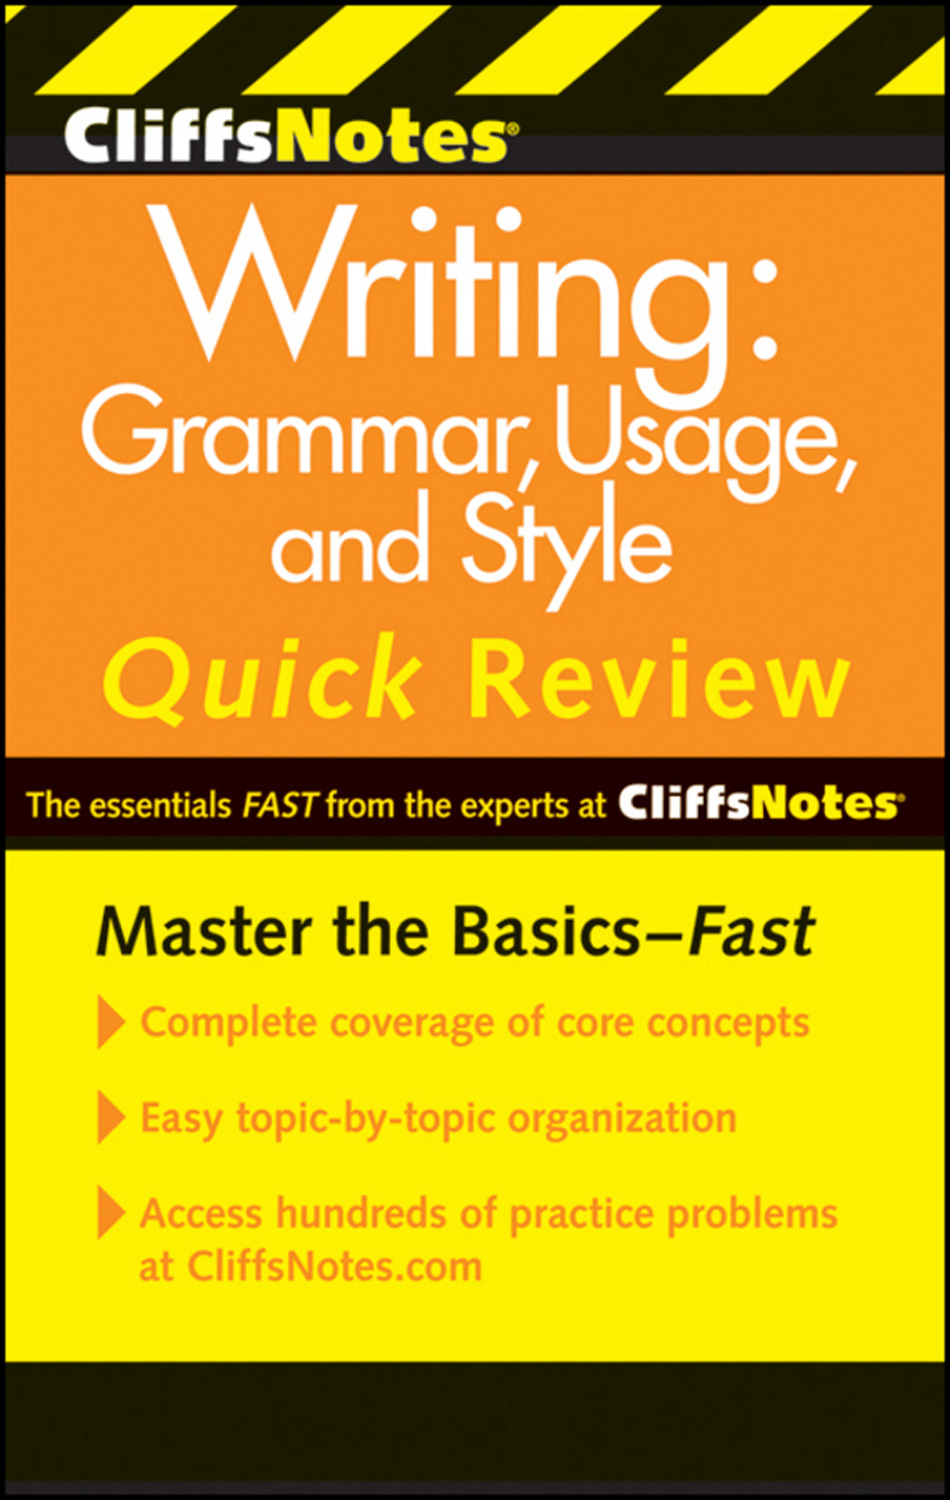 CliffsNotes Writing: Grammar, Usage, and Style Quick Review, 3rd Edition-9780470880784